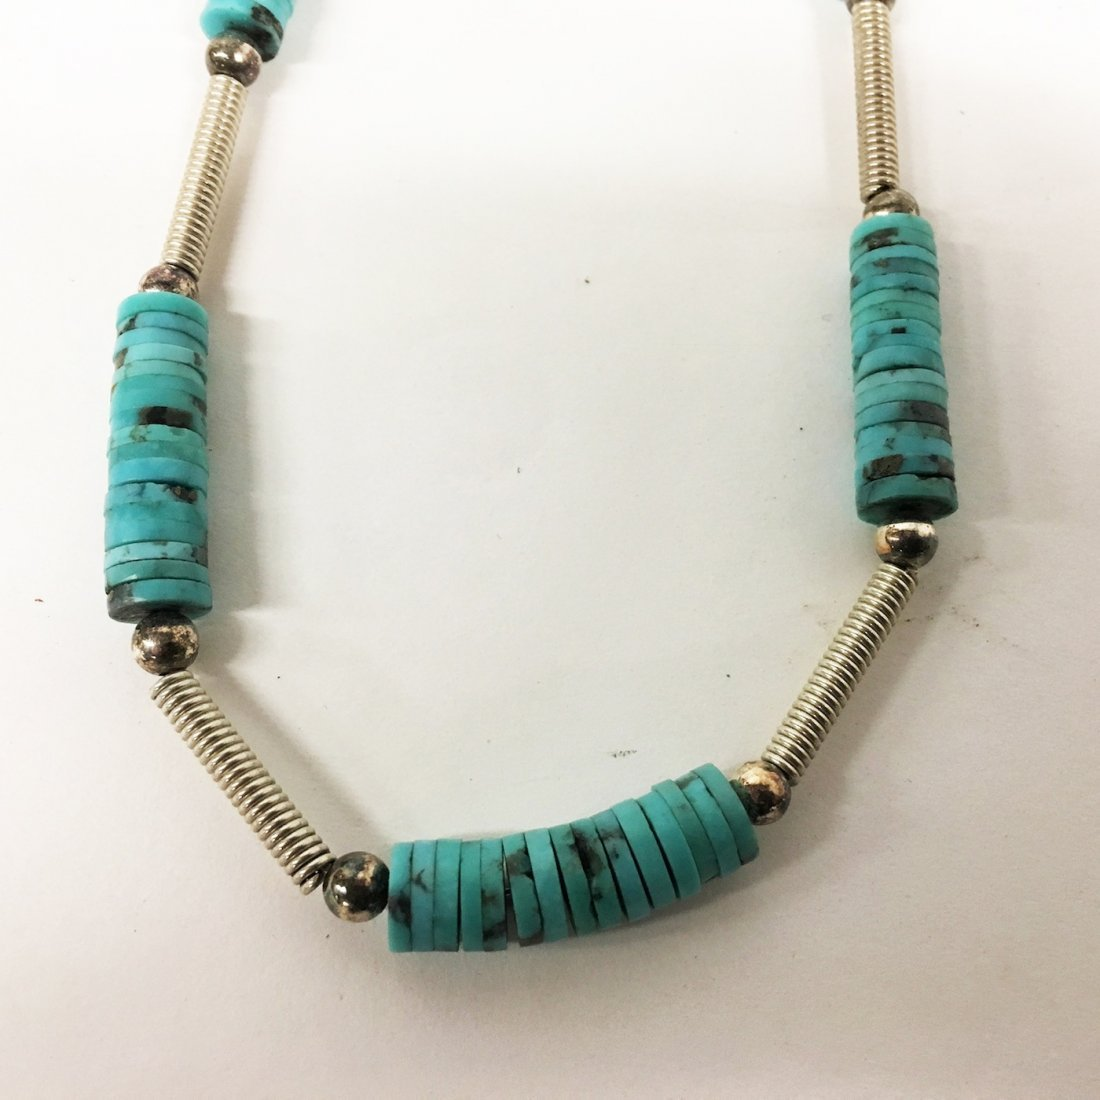 Turquoise and Sterling necklaces with gemstone accents - 6